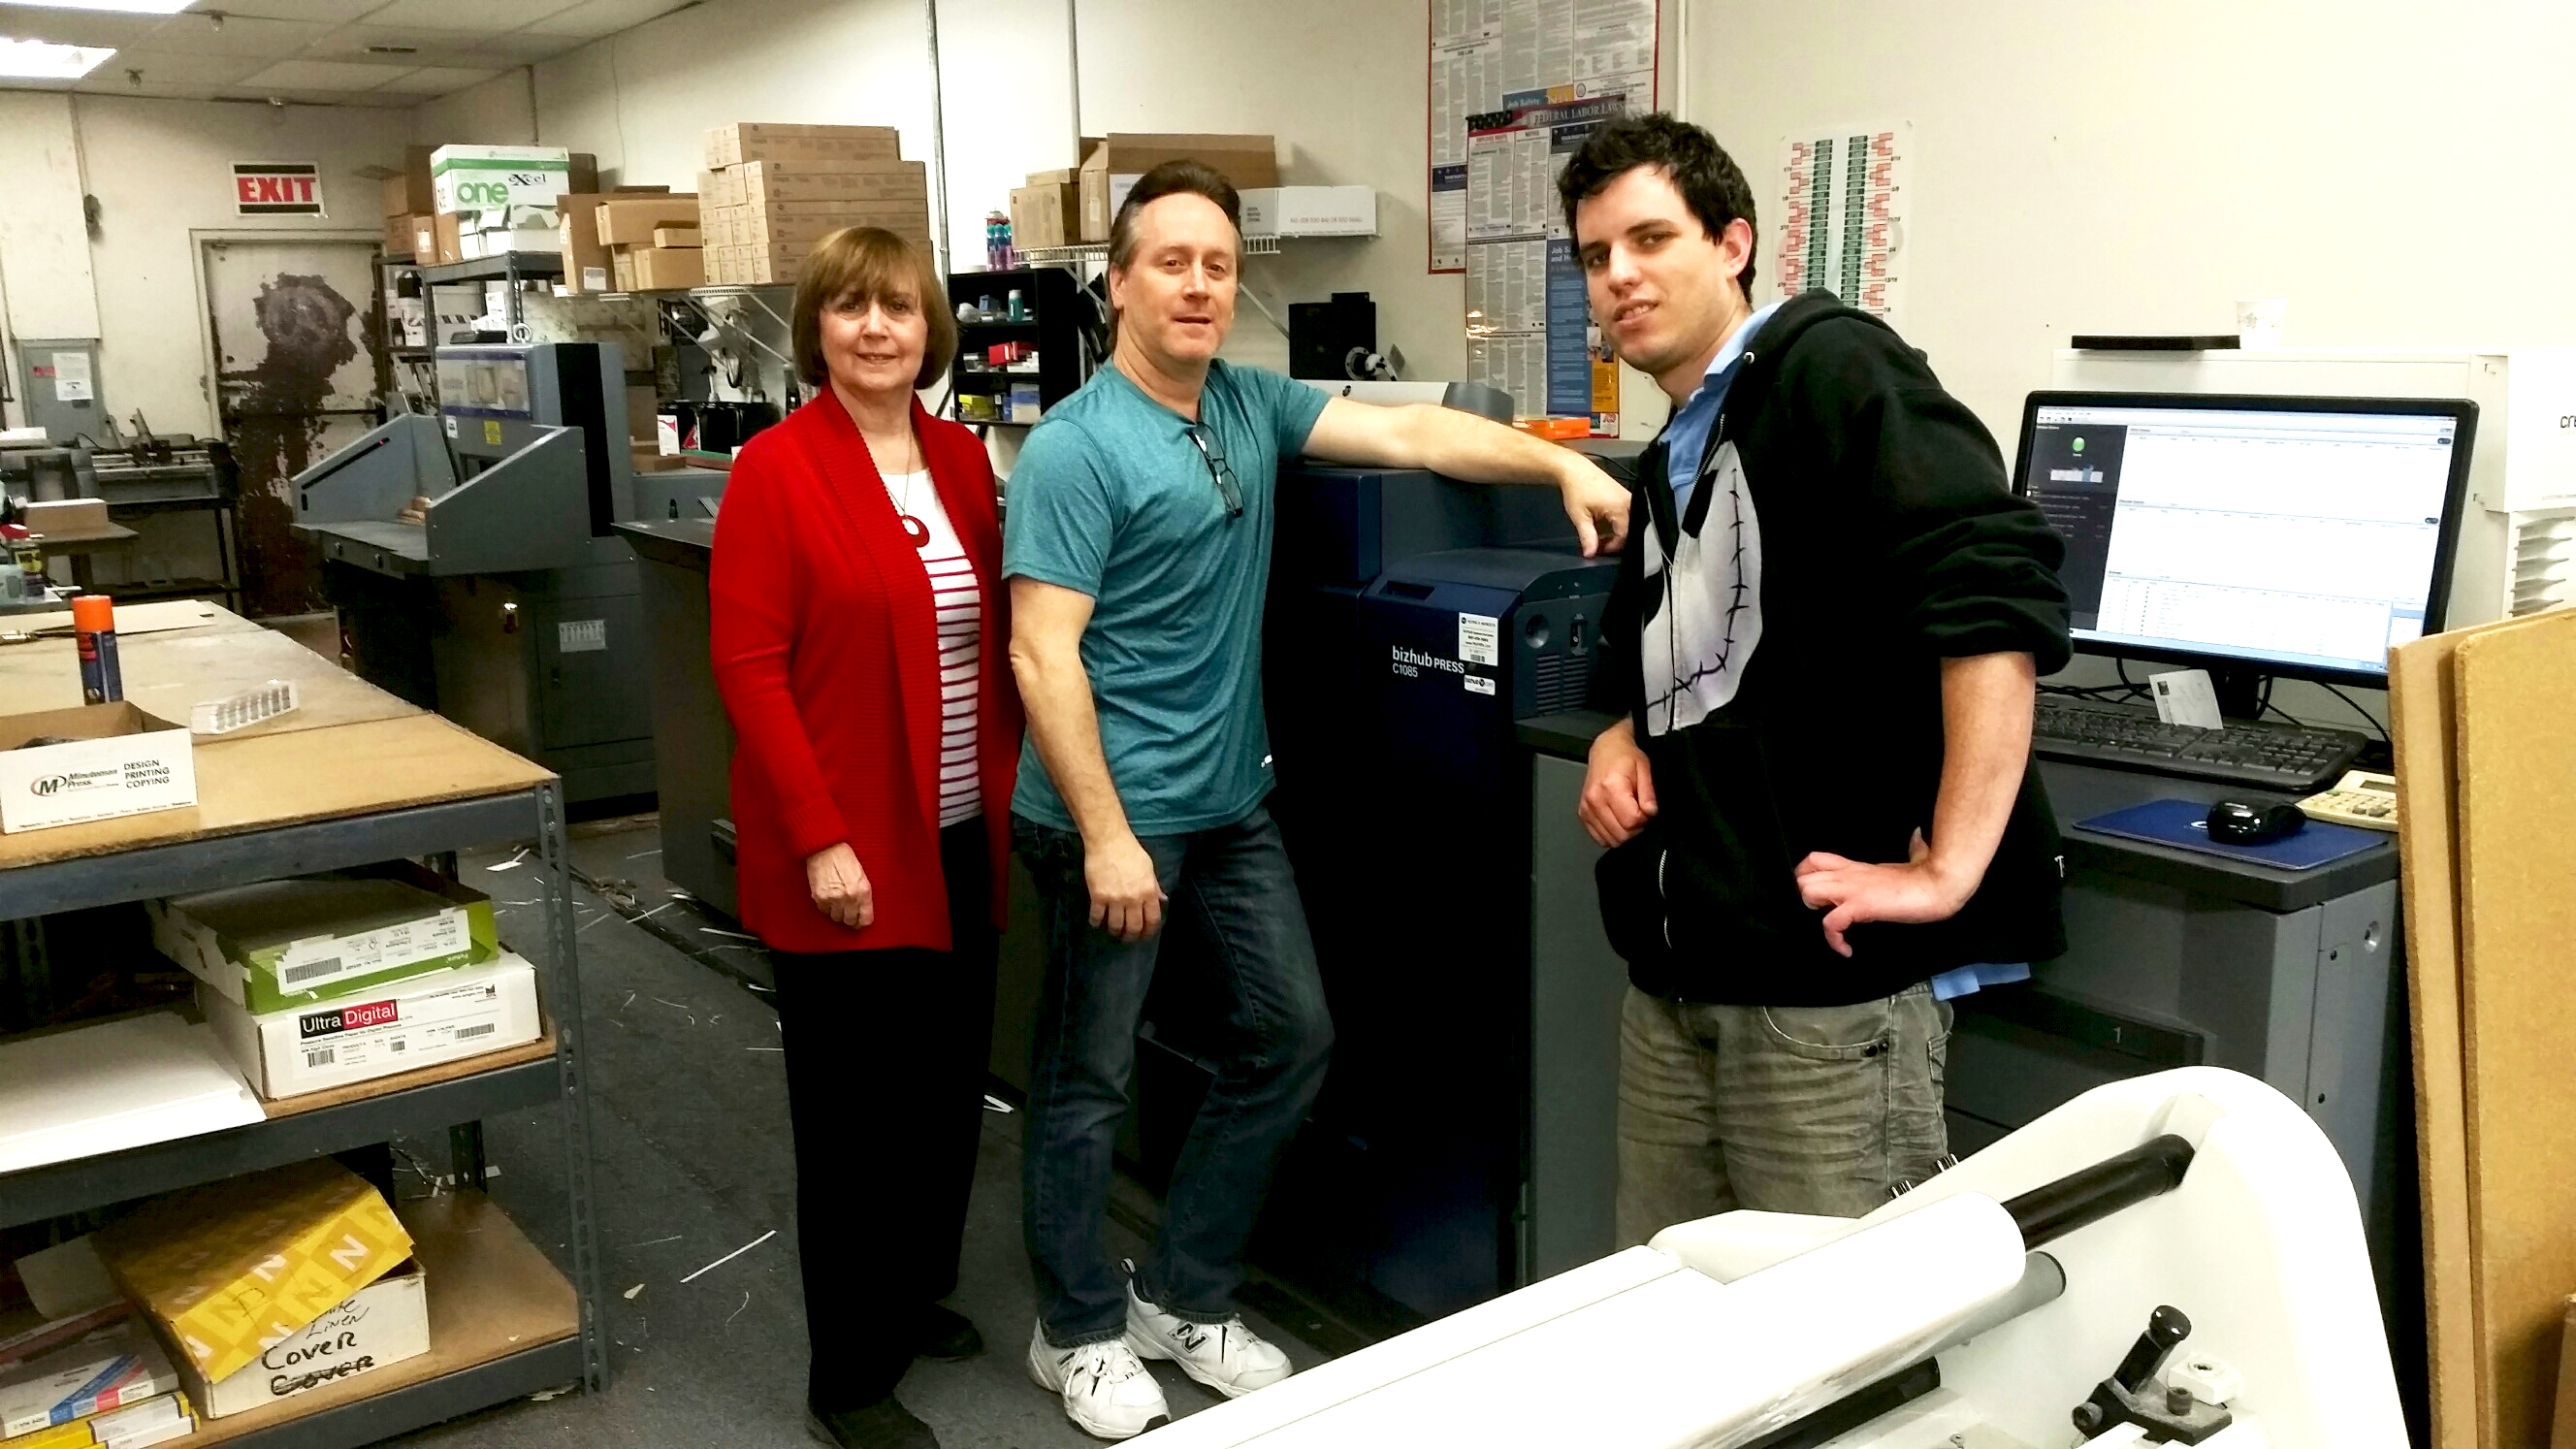 The Minuteman Press franchise in Selden, Long Island, NY appreciates the speed and efficency of their Konica Minolta C1085 digital press. Pictured from left to right are: Rita Passeggio – Owner, Scott Bomine – Shop Manager, and Miles Mongeau – Graphic Designer http://www.minutemanpressfranchise.com